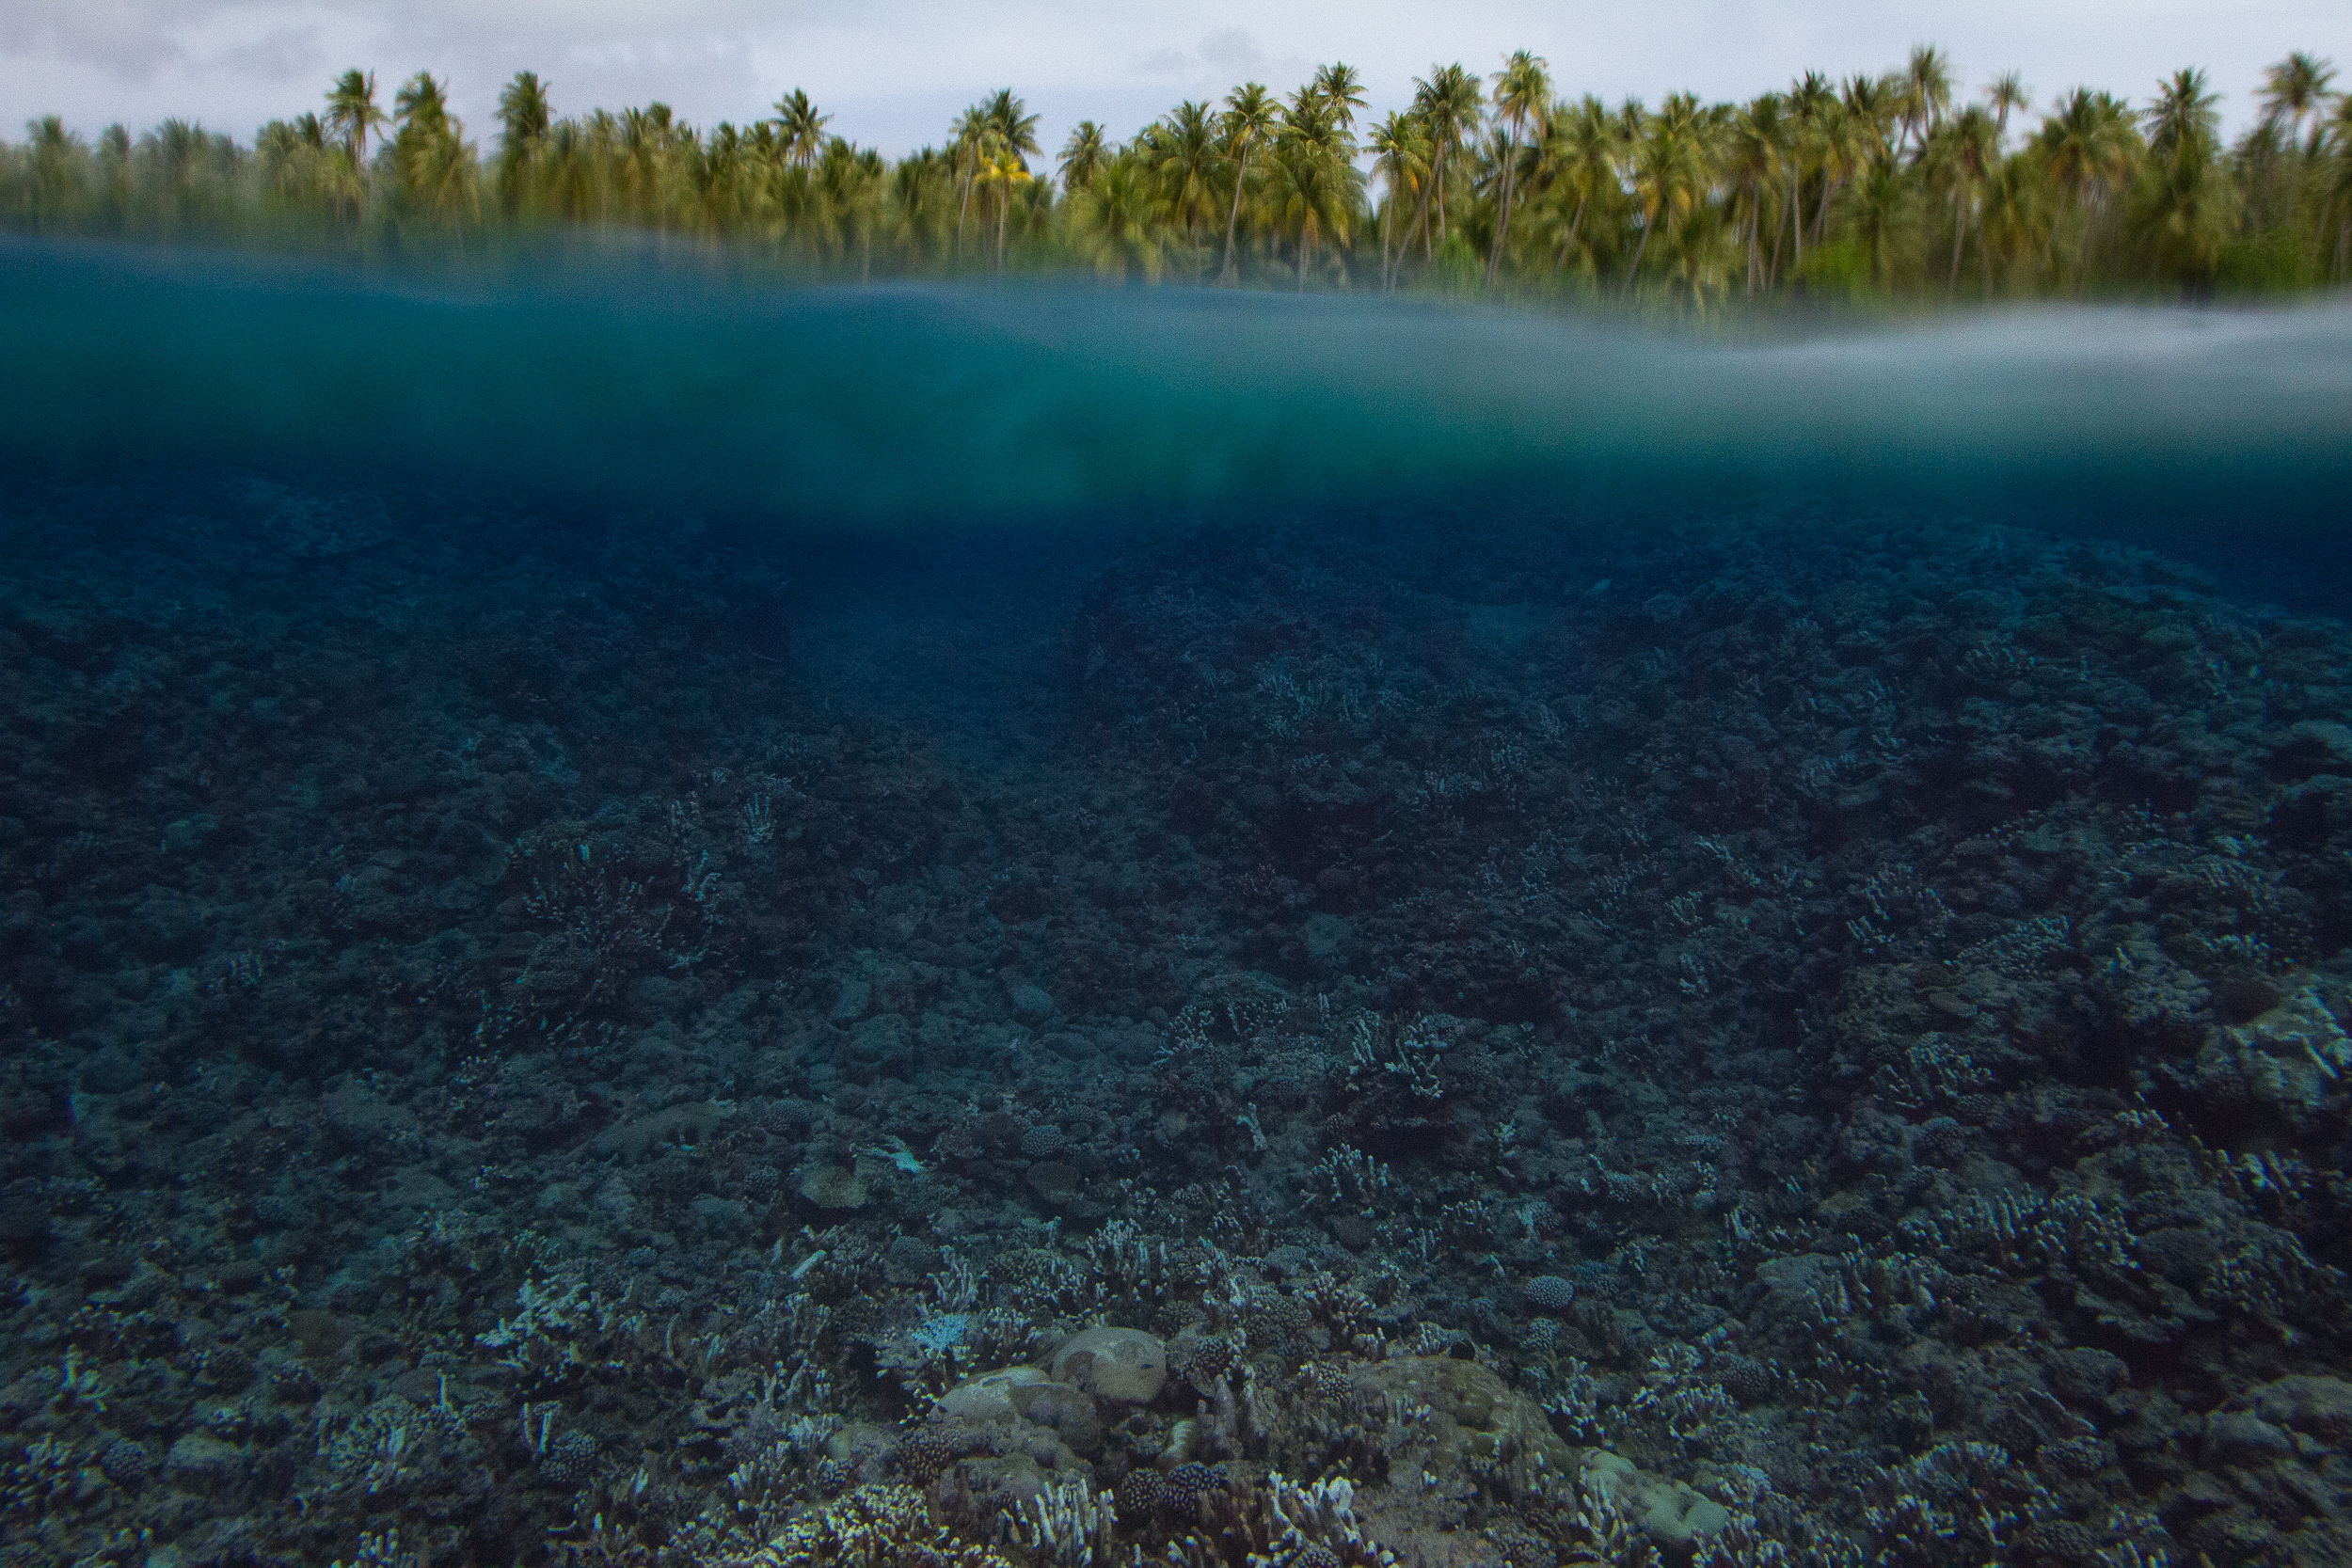 Coral reefs are vital barriers for the people of the atolls. In late 2014 a massive bleaching event struck the Marshall Islands and Kiribati. At Arno atoll in the Marshalls, this has resulted in mass coral deaths with much of the reef killed within a few weeks.